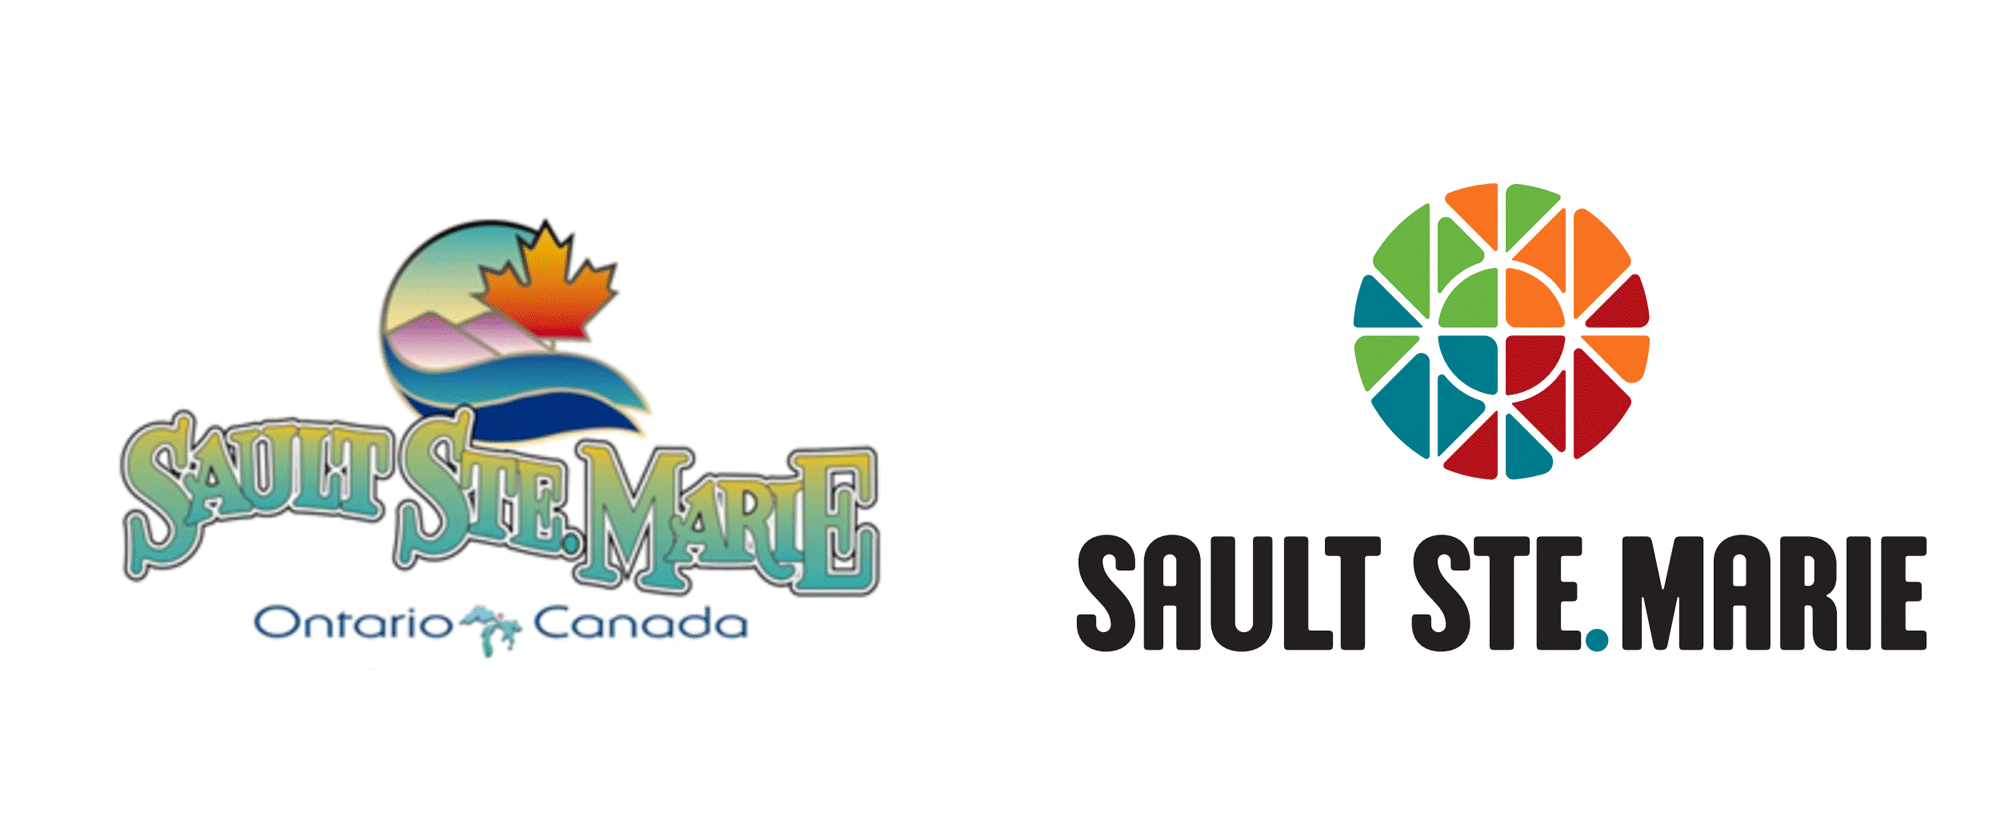 New Logo for Sault Ste. Marie by Scott Thornley + Company